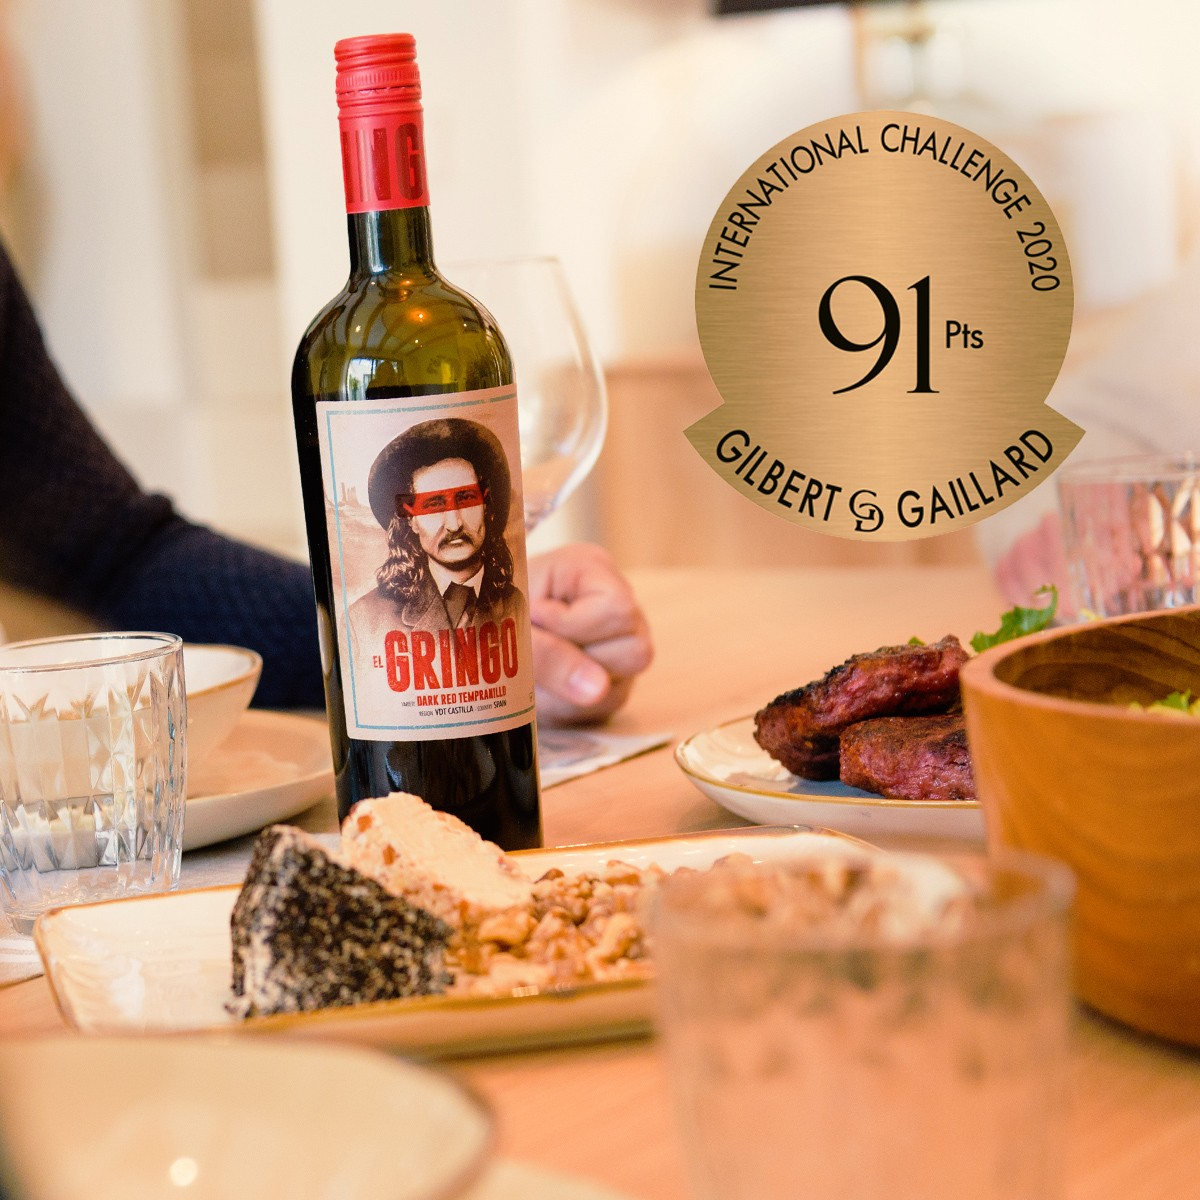 El Gringo, 91 points Gilbert & Gaillard